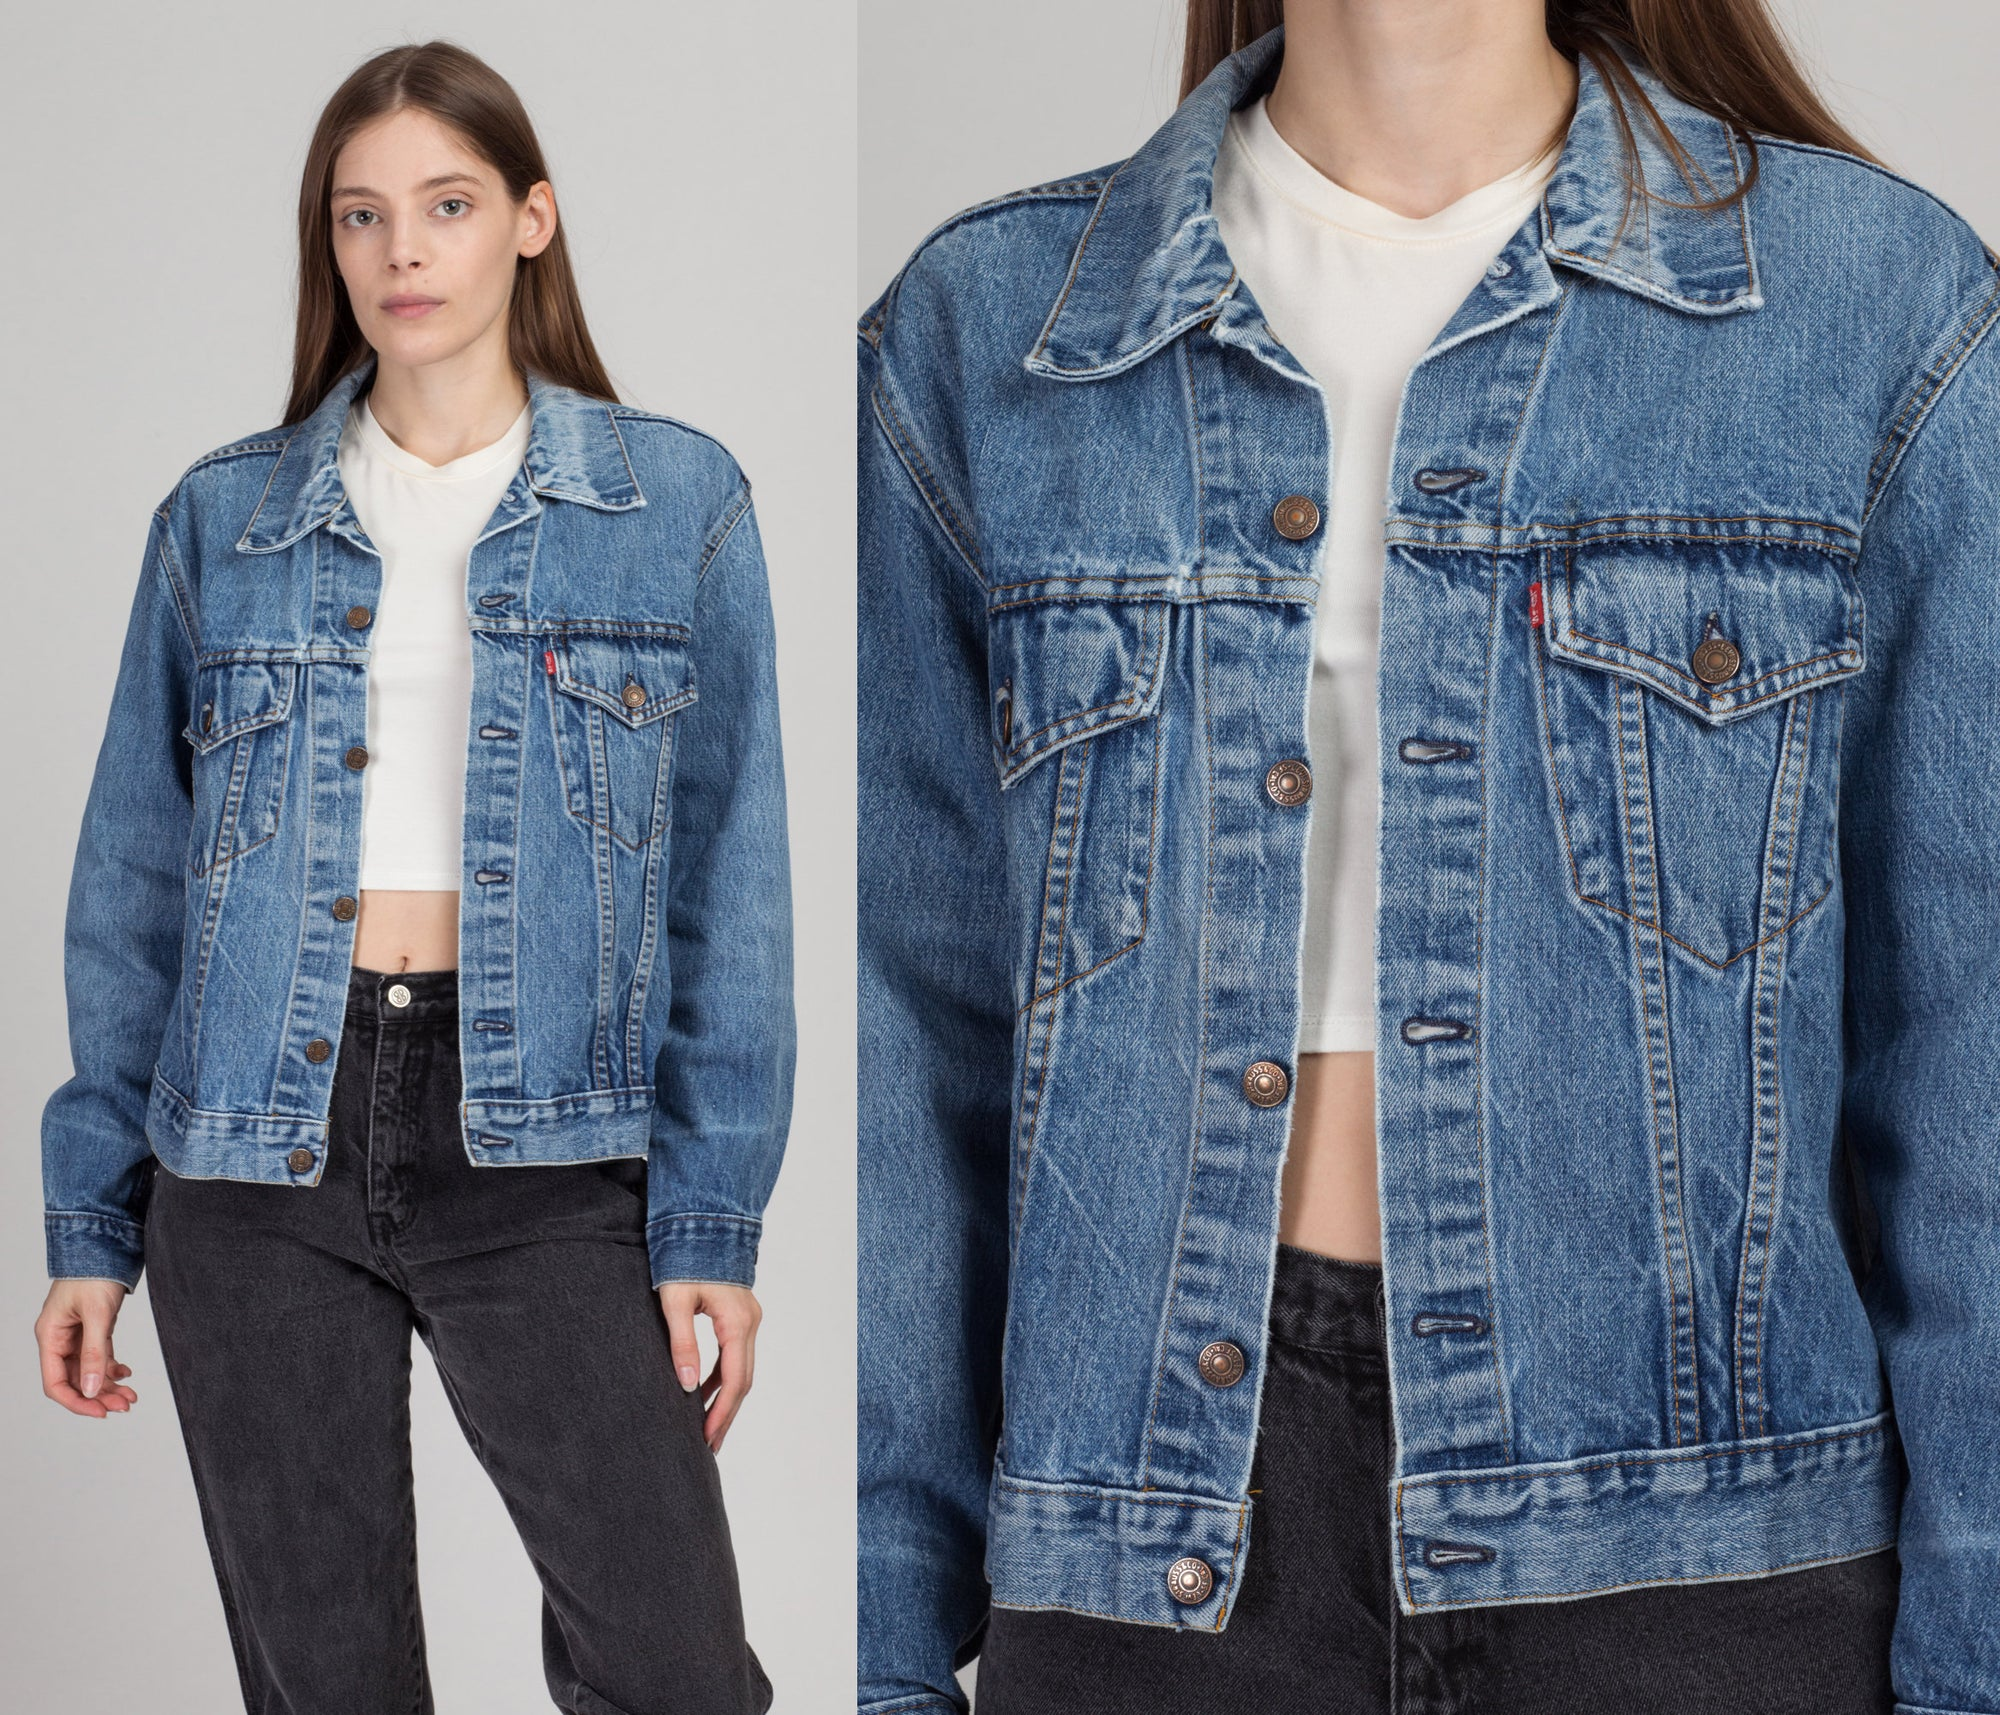 70s Levi's Two-Pocket Denim Jacket - Men's Small, Women's Medium | Vintage Grunge Jean Trucker Jacket